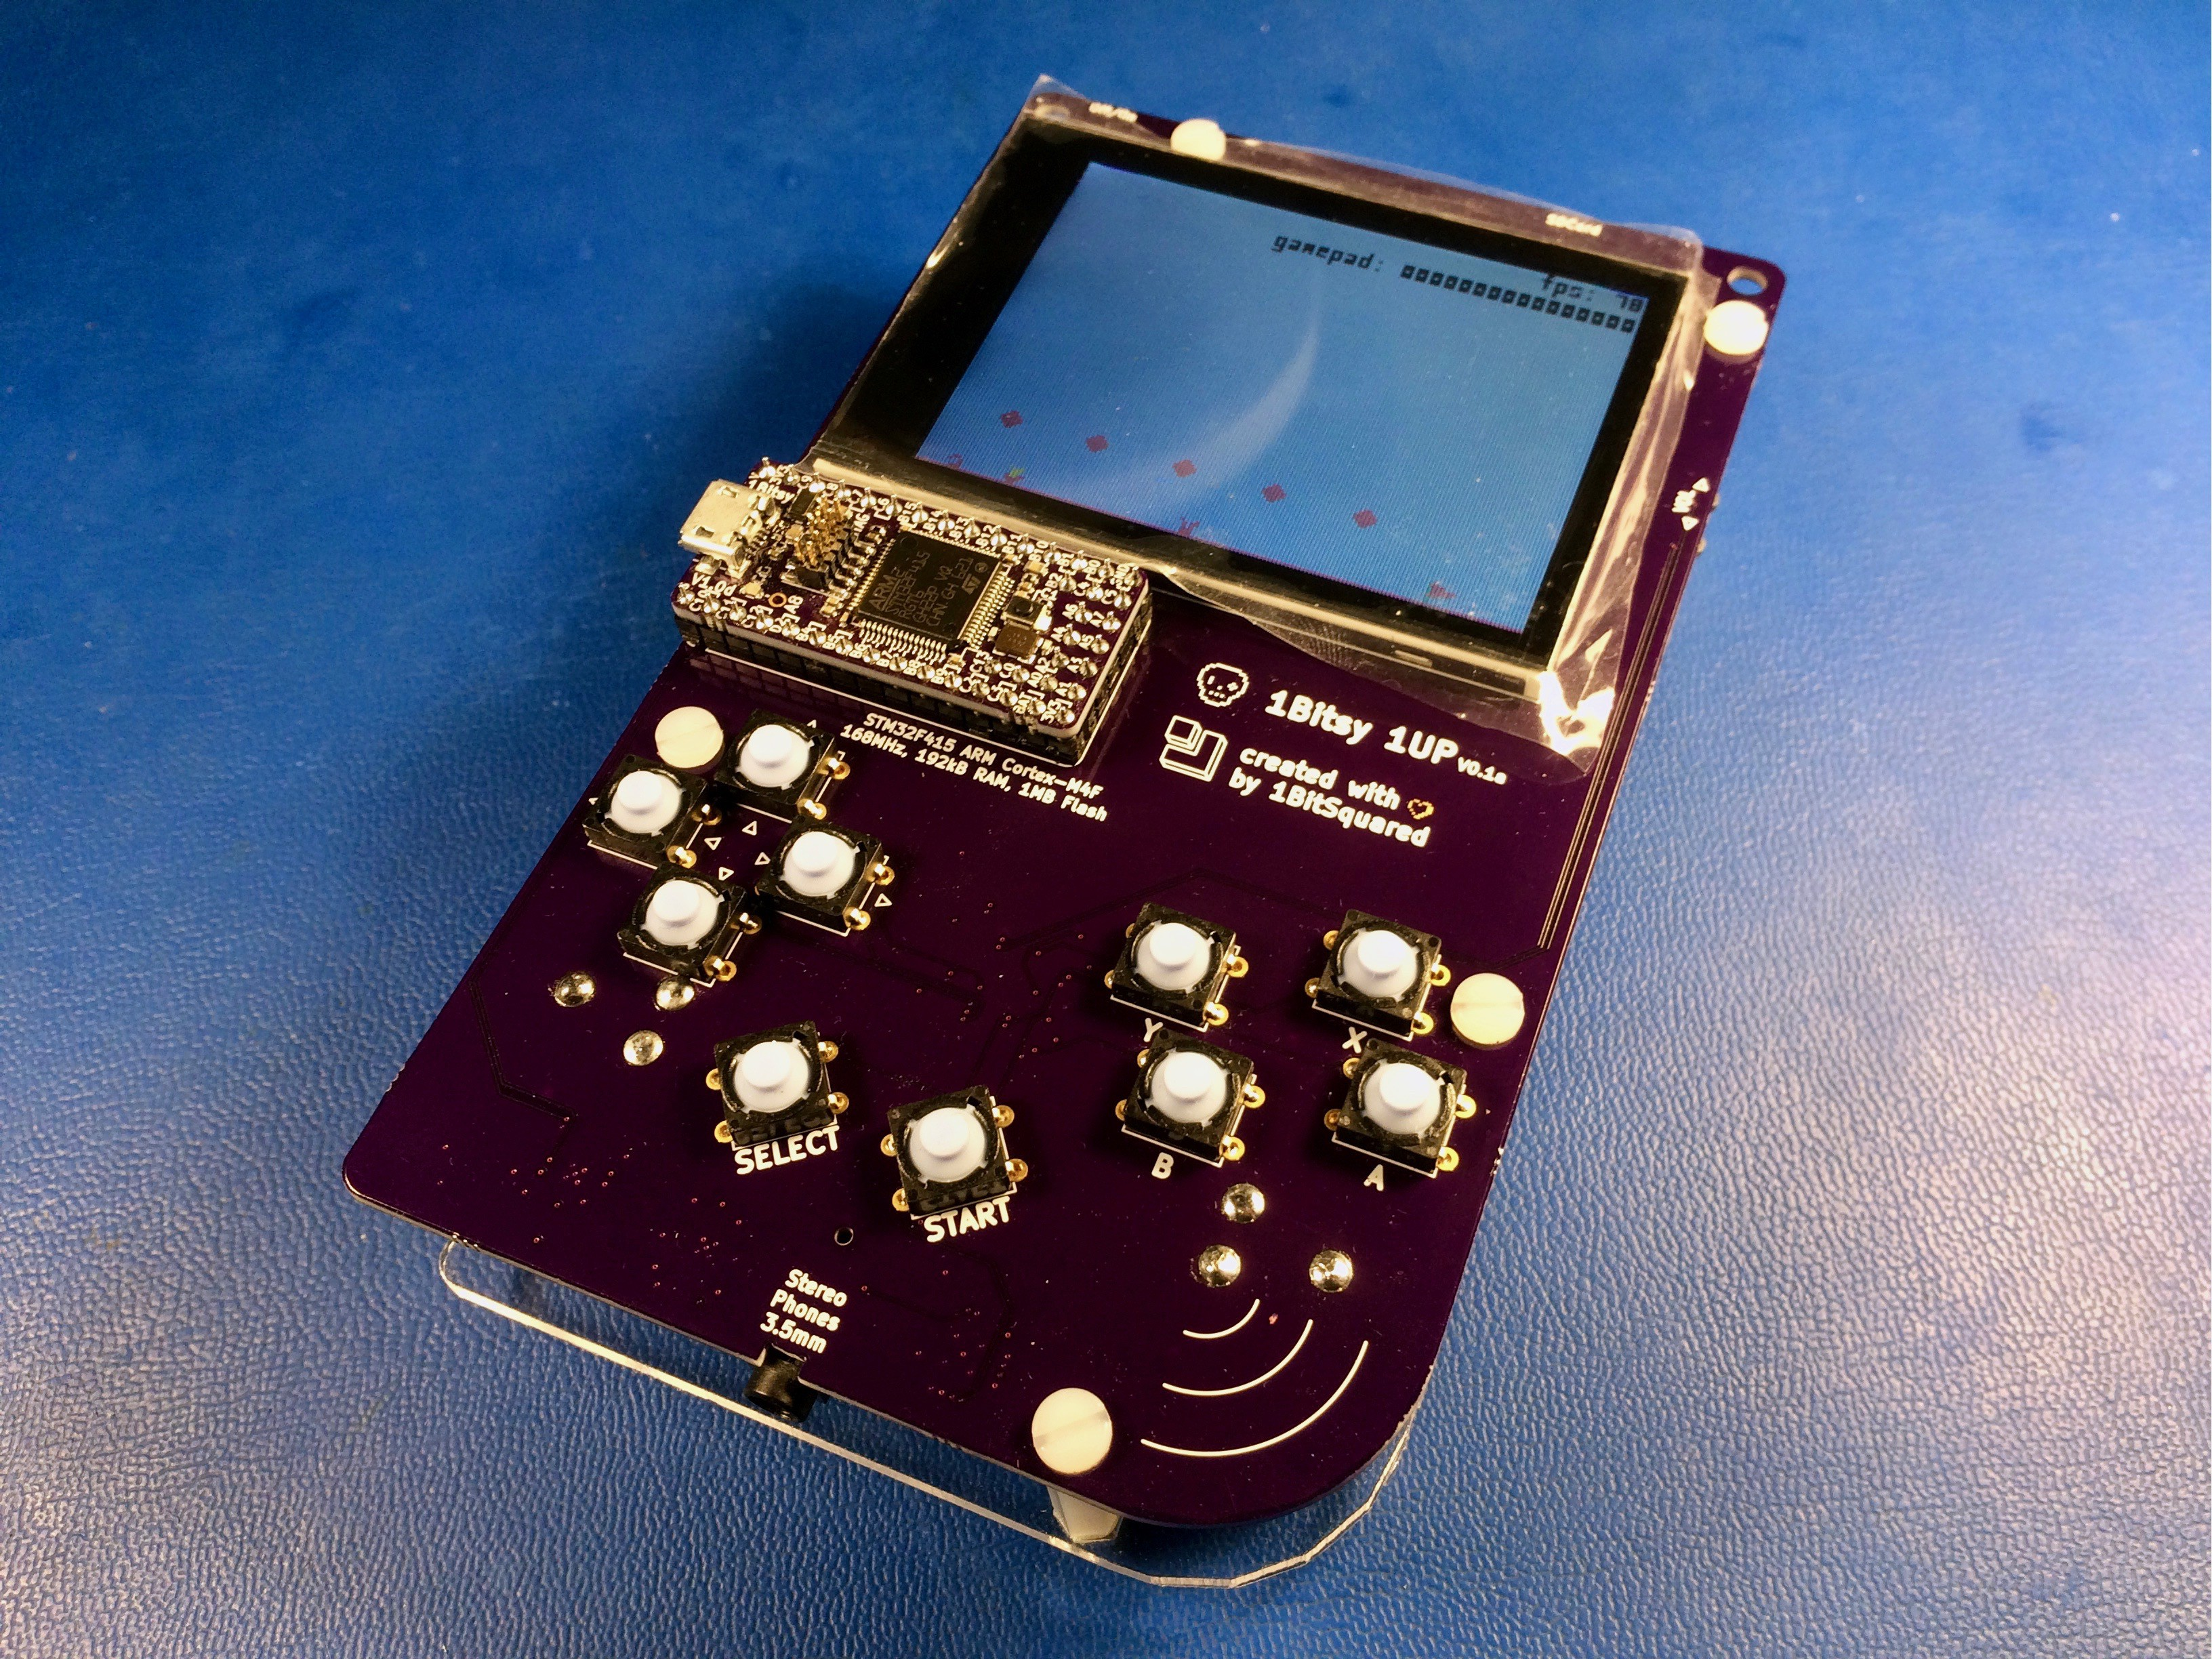 1bitsy 1up Making Gameboy Systems Circuit Next Goal Is To Finish Assembling The Other Two And Maybe Make Another Trip Hackerspace Tinker With Some Plate Solutions